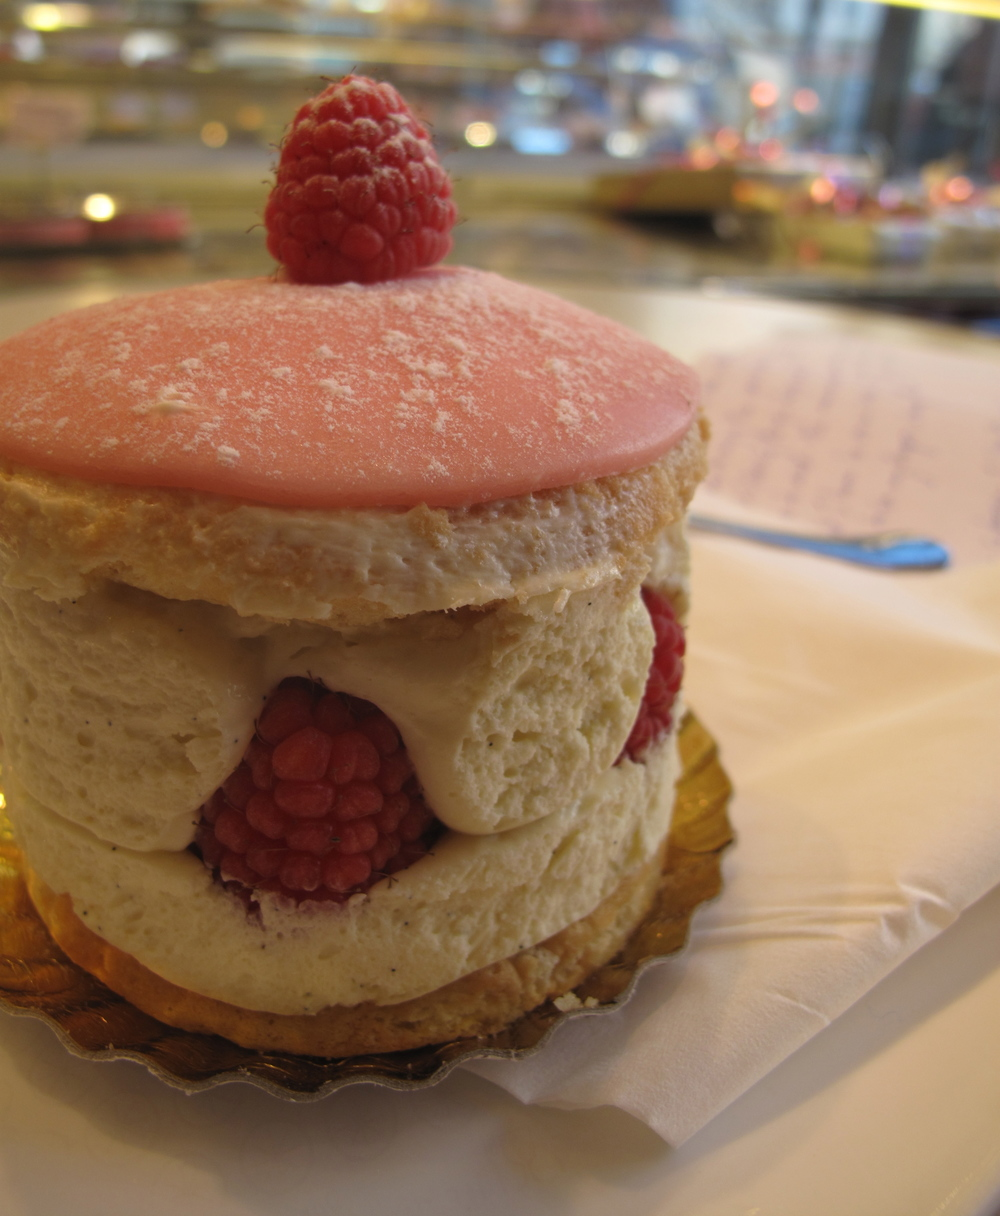 Pastry of cream and raspberries in Lyon, France